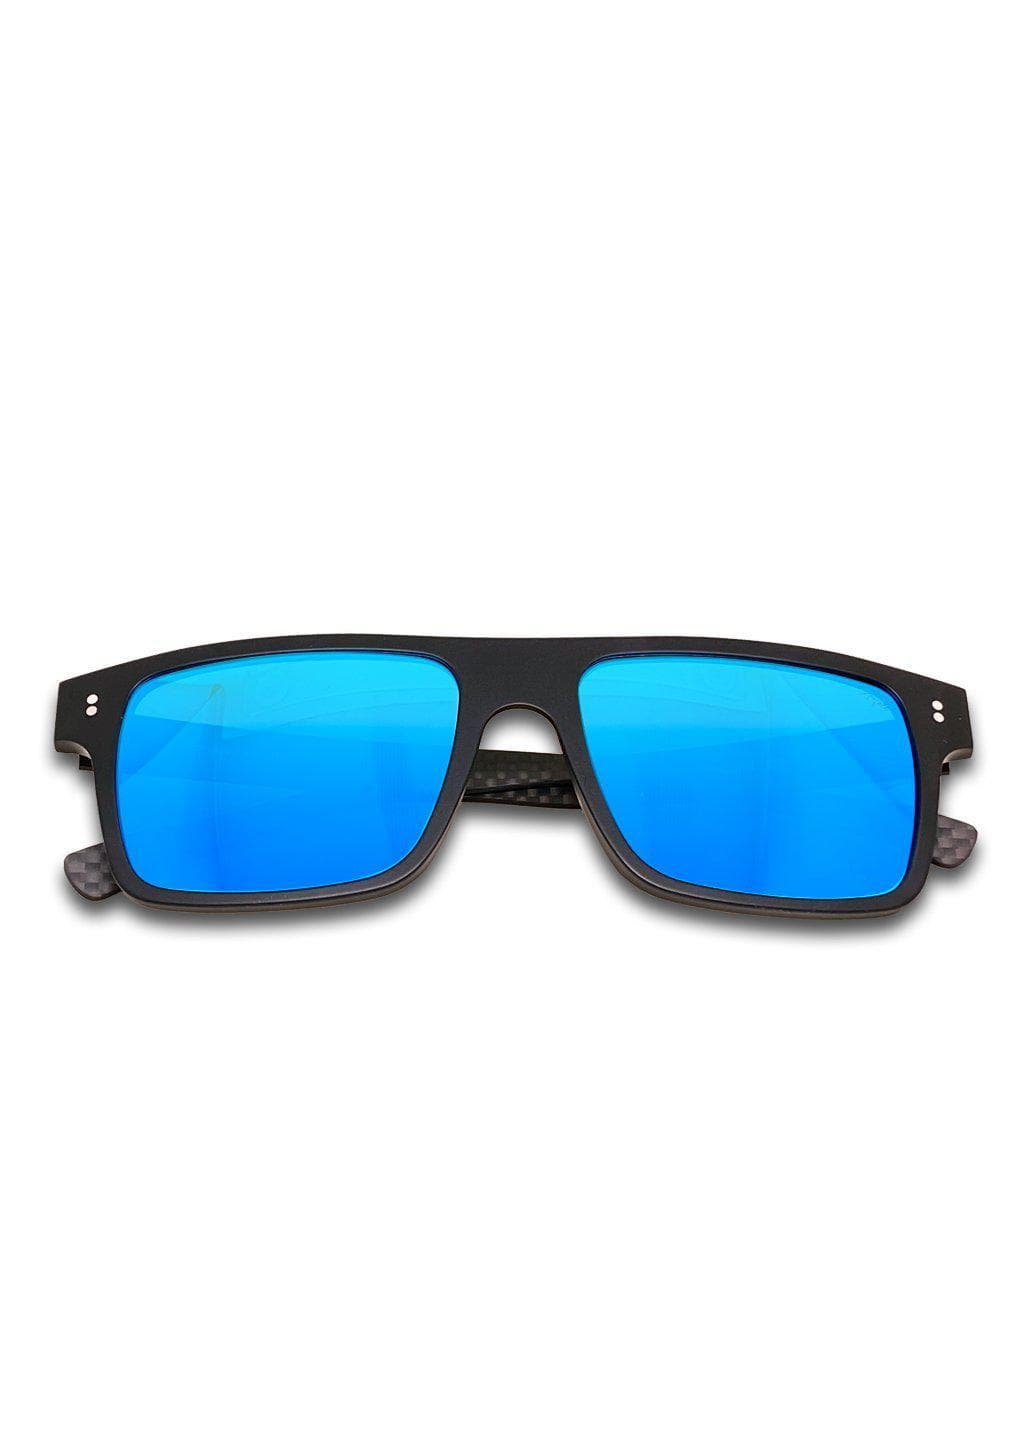 Hybrid - Cubic, carbon fiber and acetate sunglasses of the highest quality. Black frame and blue mirror lenses.